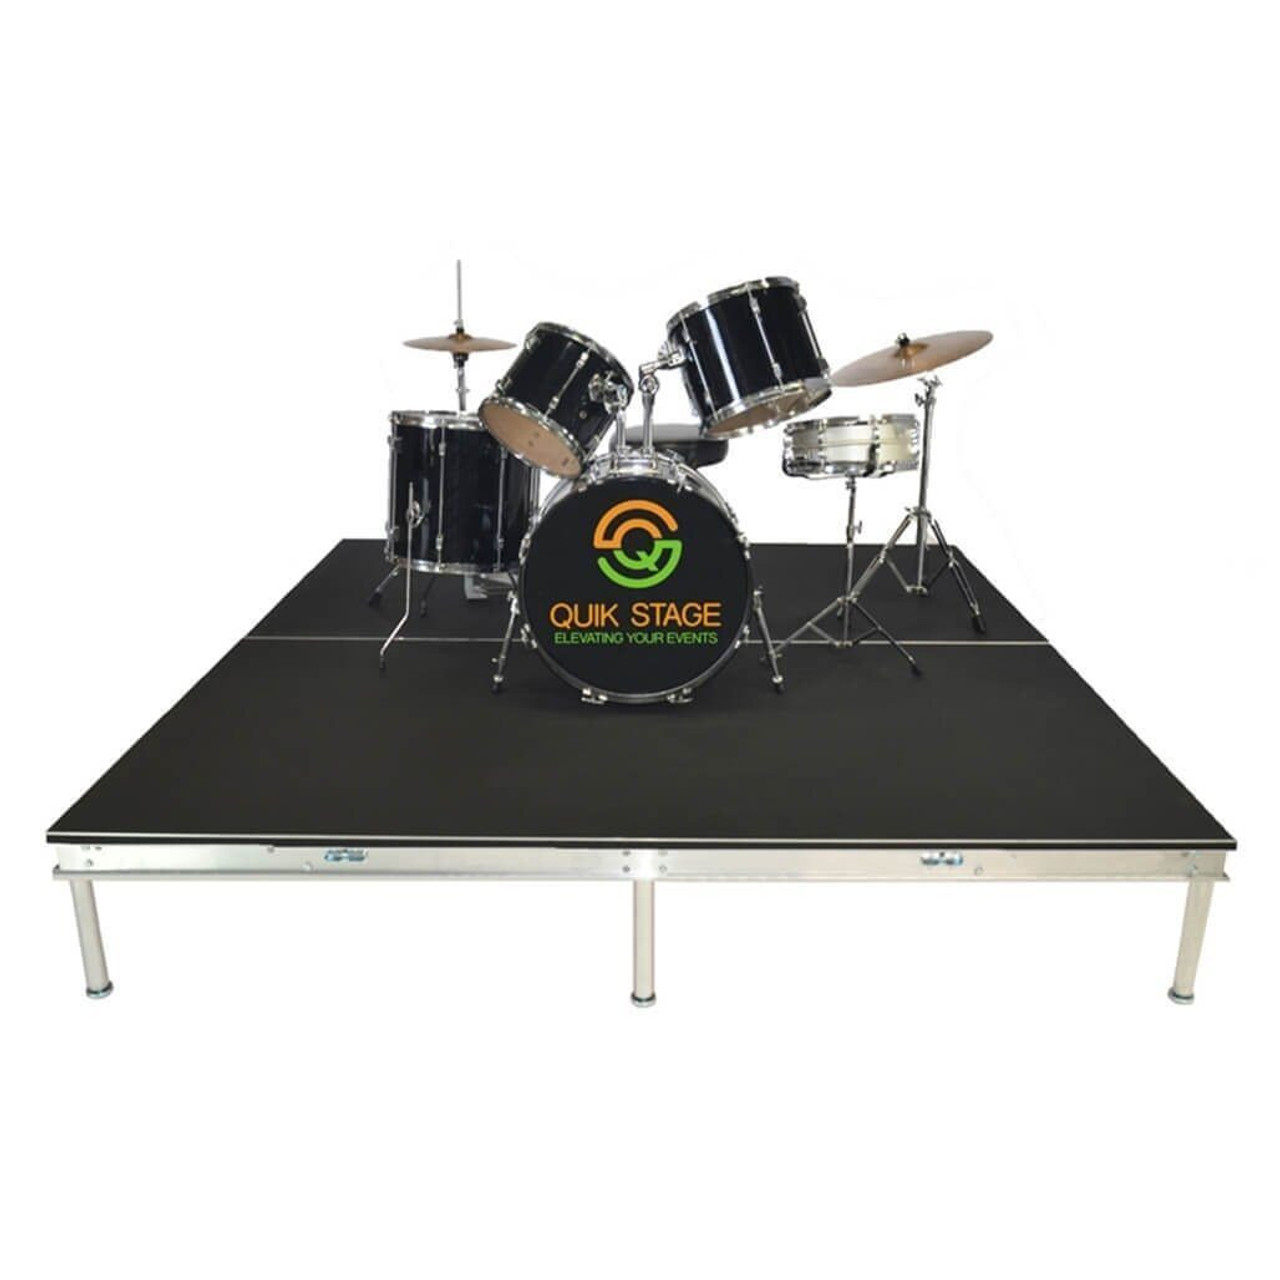 Quik Stage 8' x 24' High Portable Stage Package with Black Polyvinyl Non-Skid Surface. Additional Heights and Surfaces Available - Drum Riser without skirting